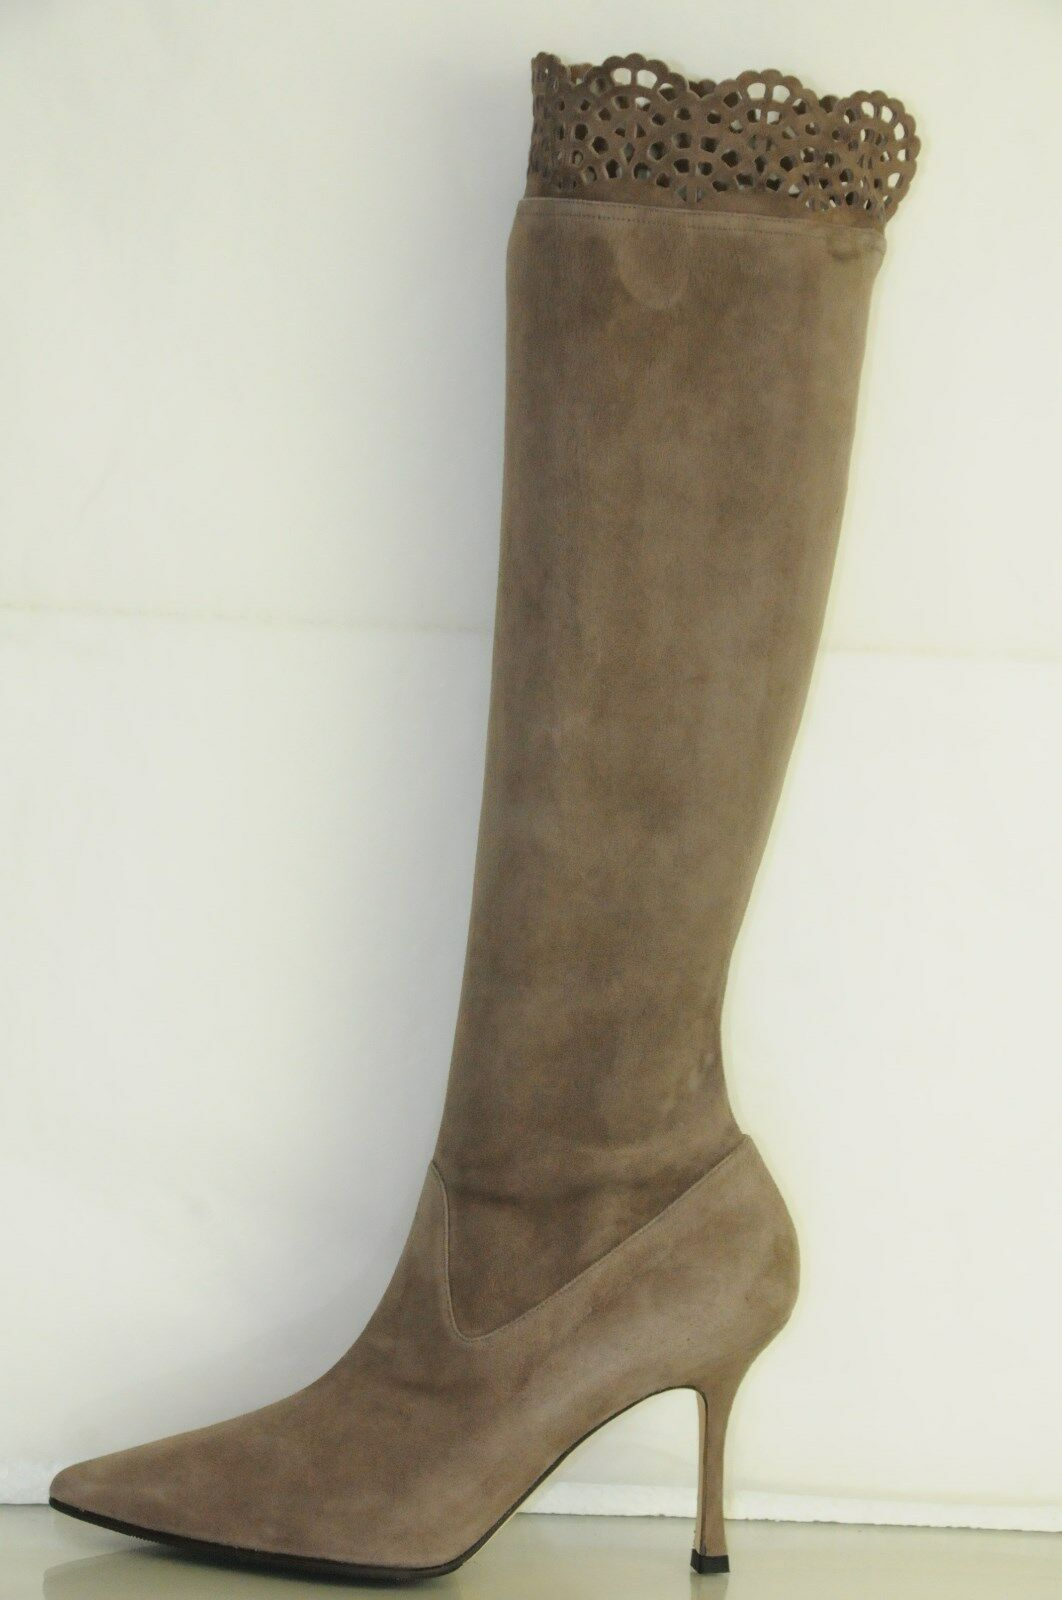 New MANOLO BLAHNIK  PAFATOLO TAUPE Beige Suede Stretch Boots SHOES 35 36.5 37